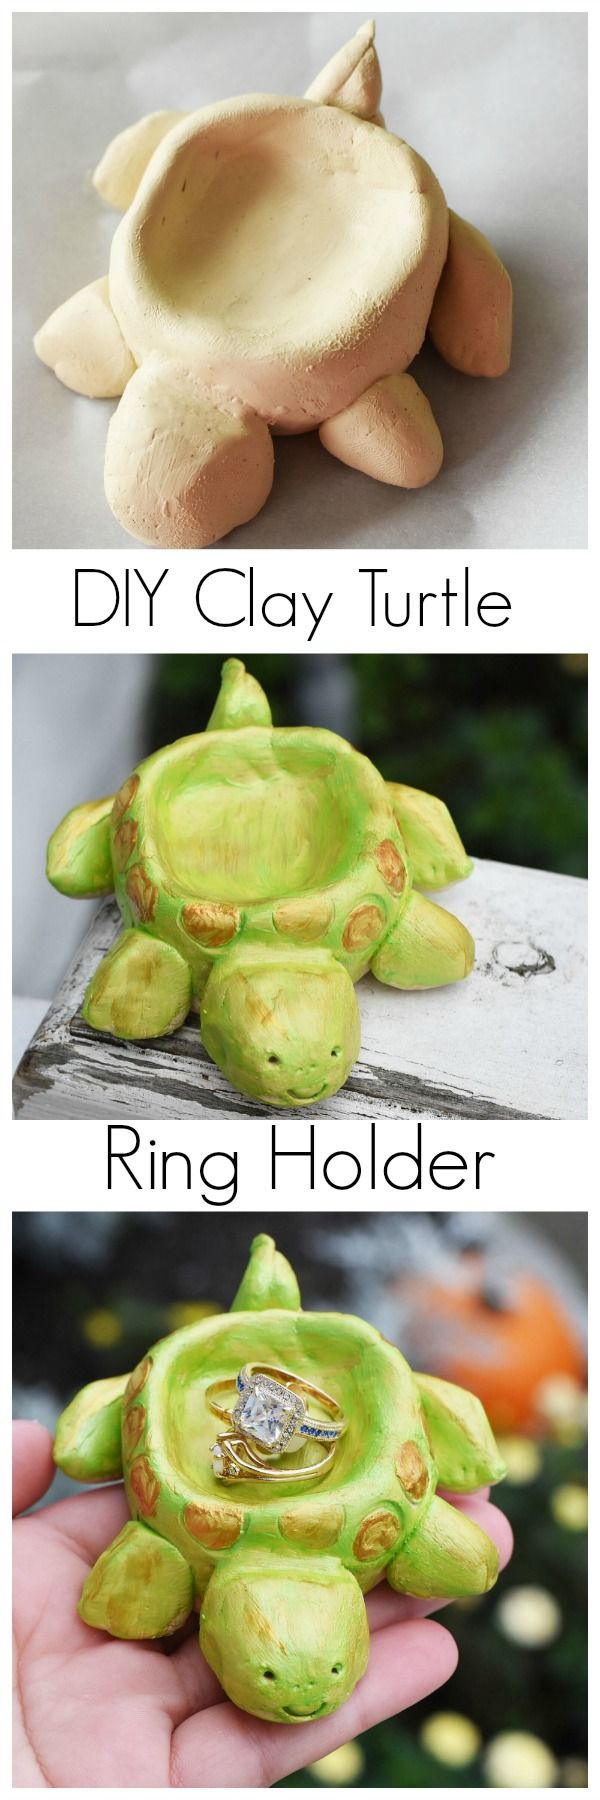 Check out this DIY Clay Turtle Ring Holder. It is made with the Pottery Cool machine by @spin_master. Make fun clay creations, allow them to dry, and then paint them. Everything you need is in the kit. Check out our DIY!  #PotteryCool AD